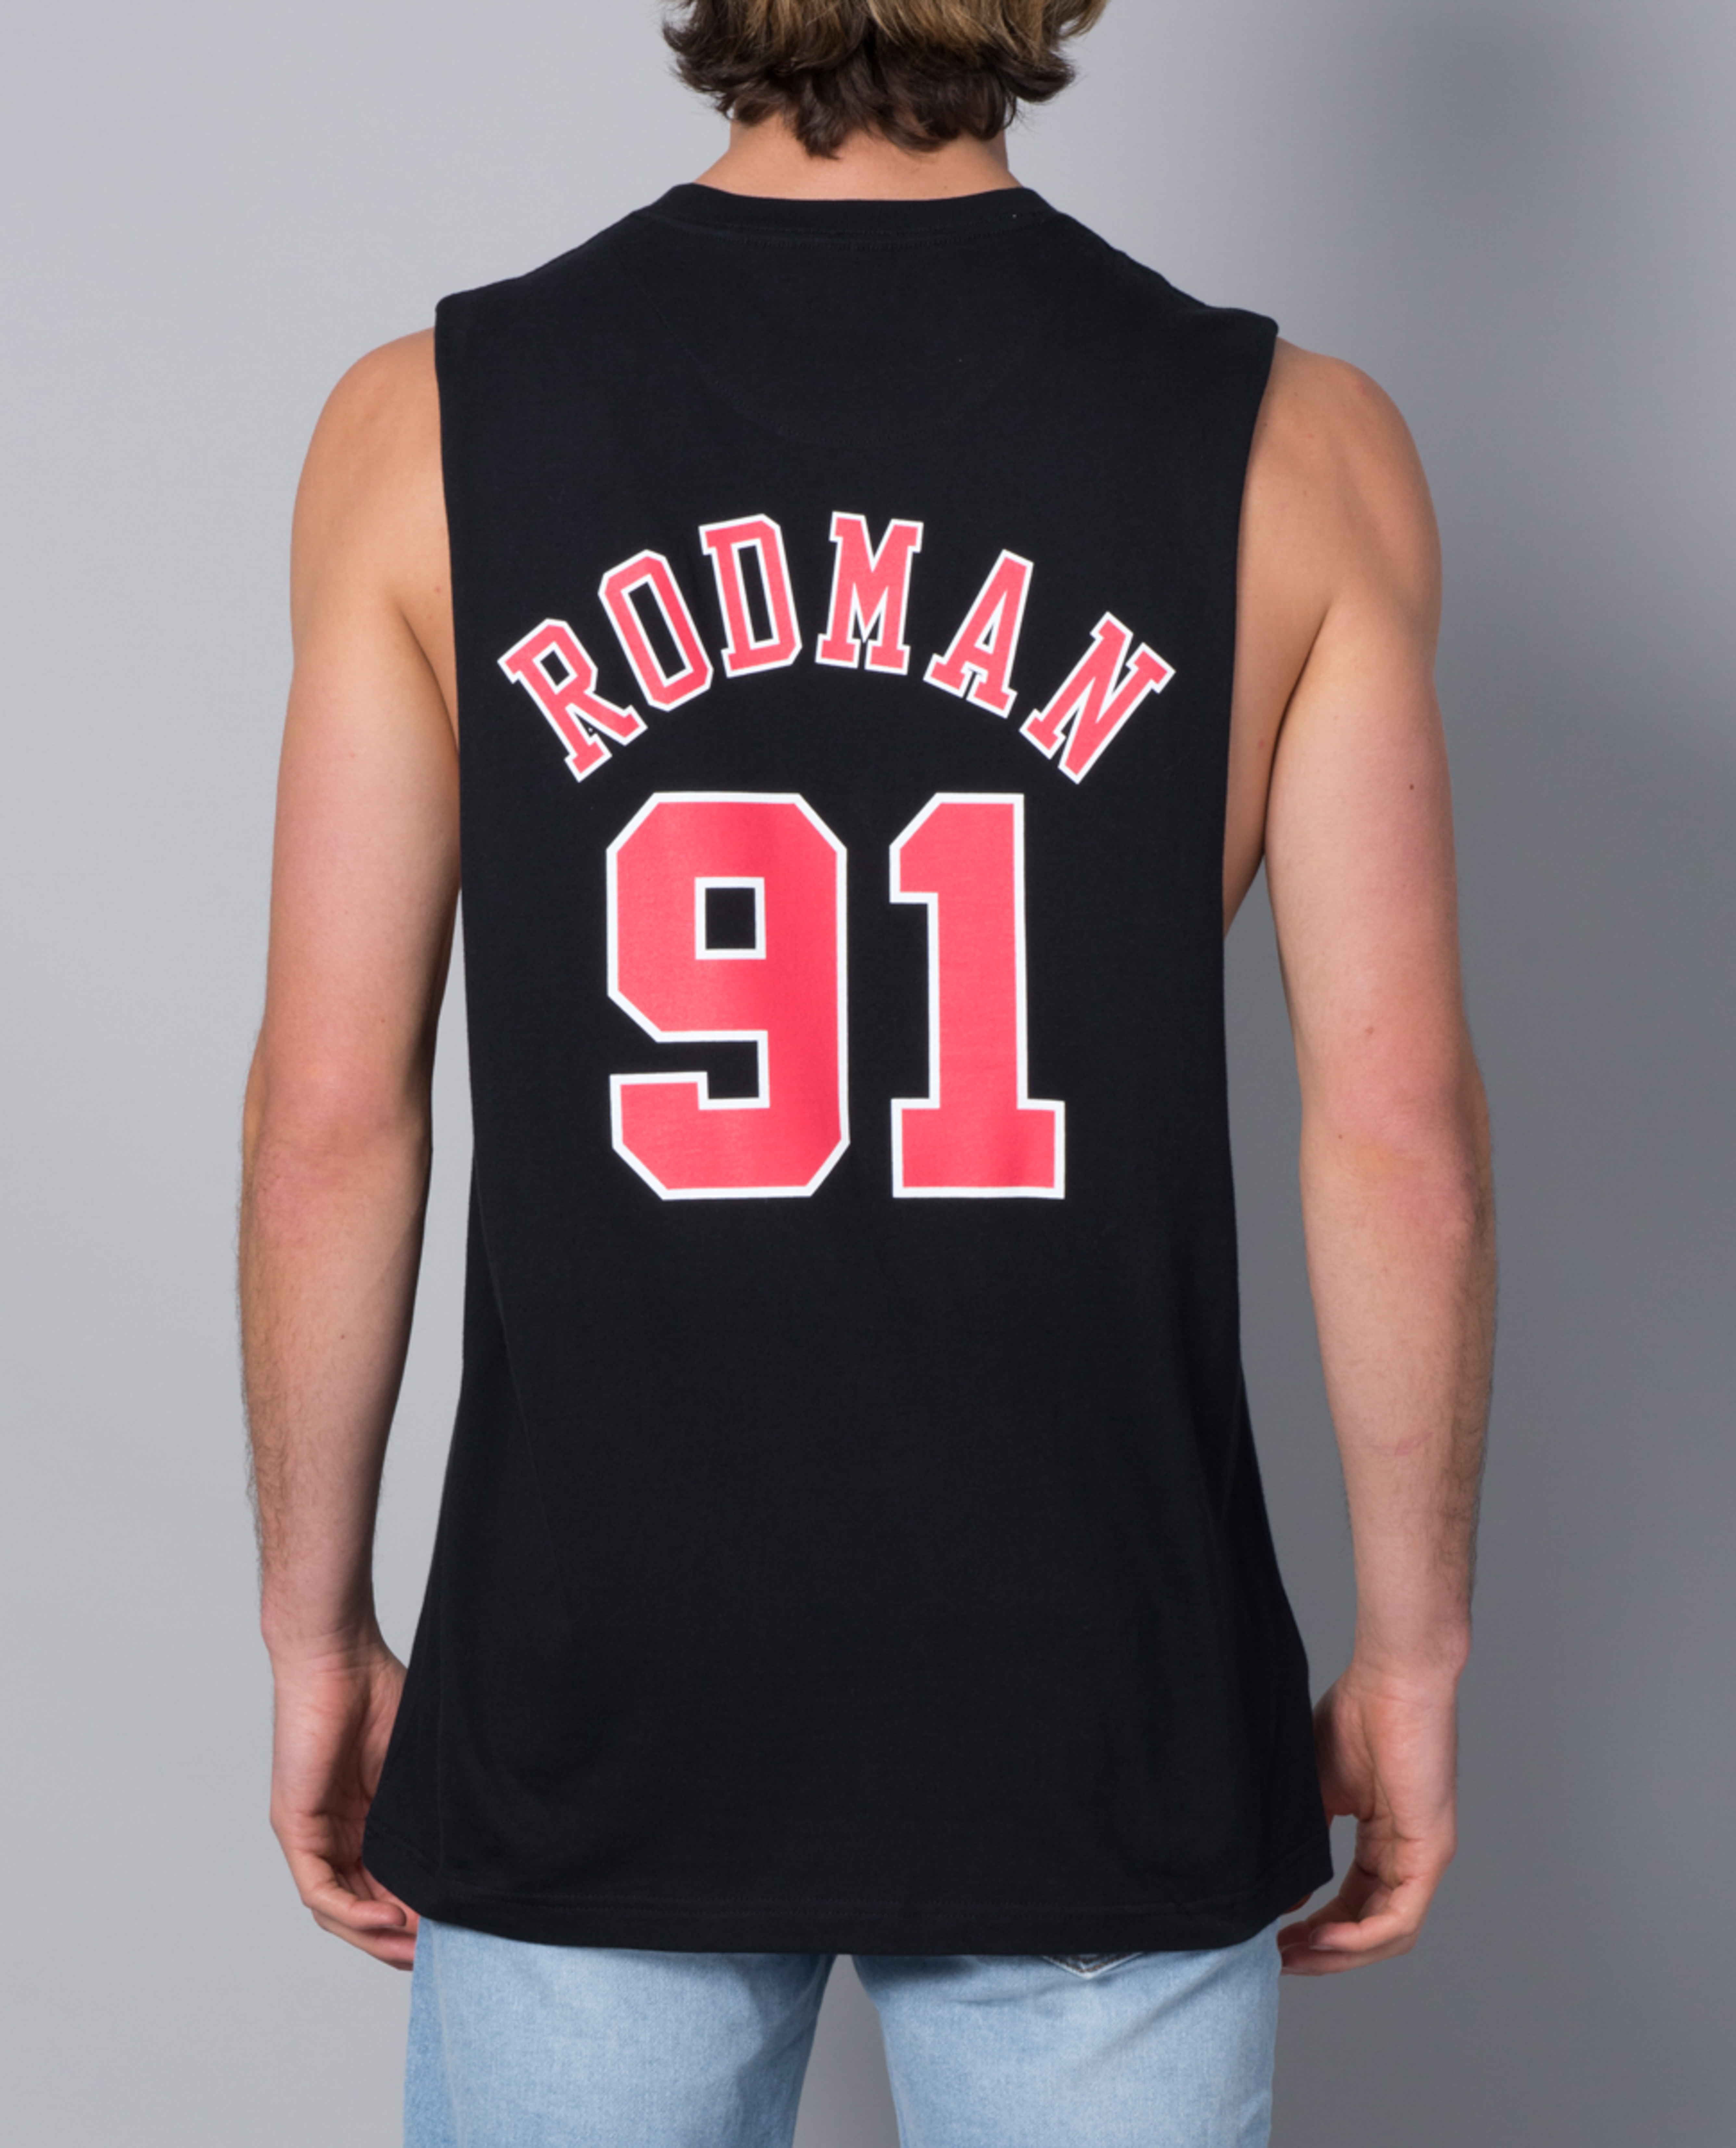 Mitchell and Ness Chicago Bulls Singlet Top | Ozmosis